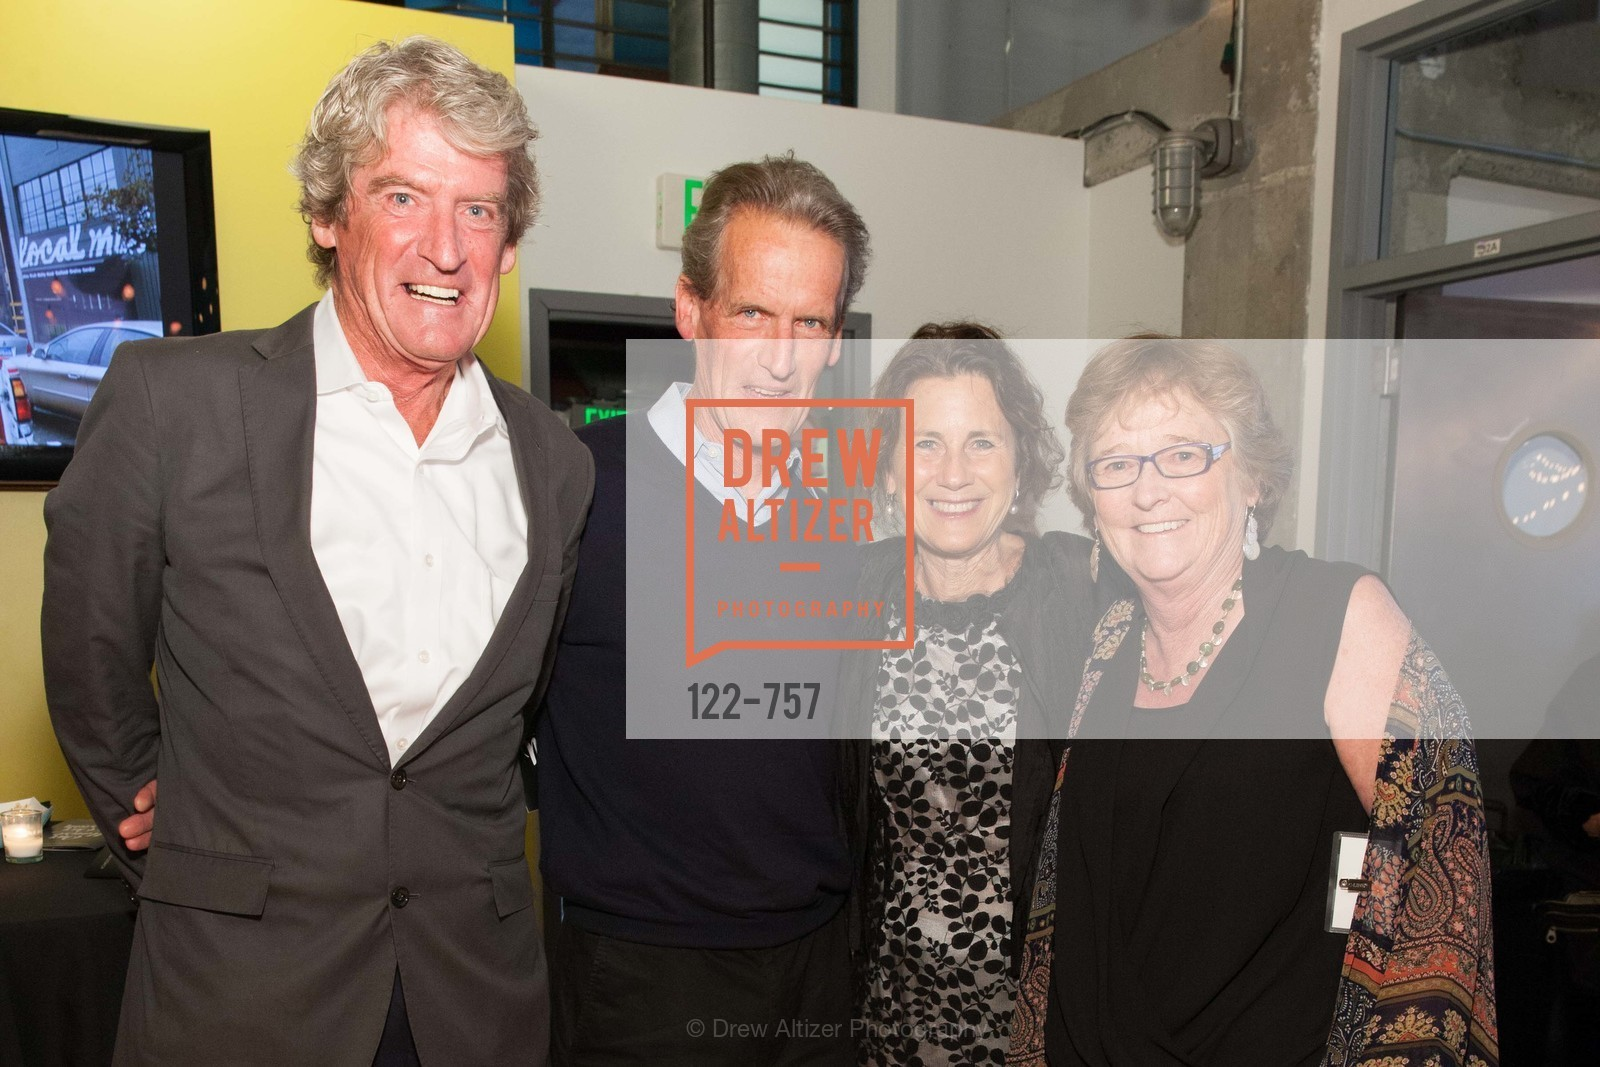 Daniel Heggarty, Ned Heggarty, Catherine Heggarty, Martha Ryan, HOMELESS PRENATAL PROGRAM Our House, Our Mission Gala, US, May 30th, 2015,Drew Altizer, Drew Altizer Photography, full-service agency, private events, San Francisco photographer, photographer california